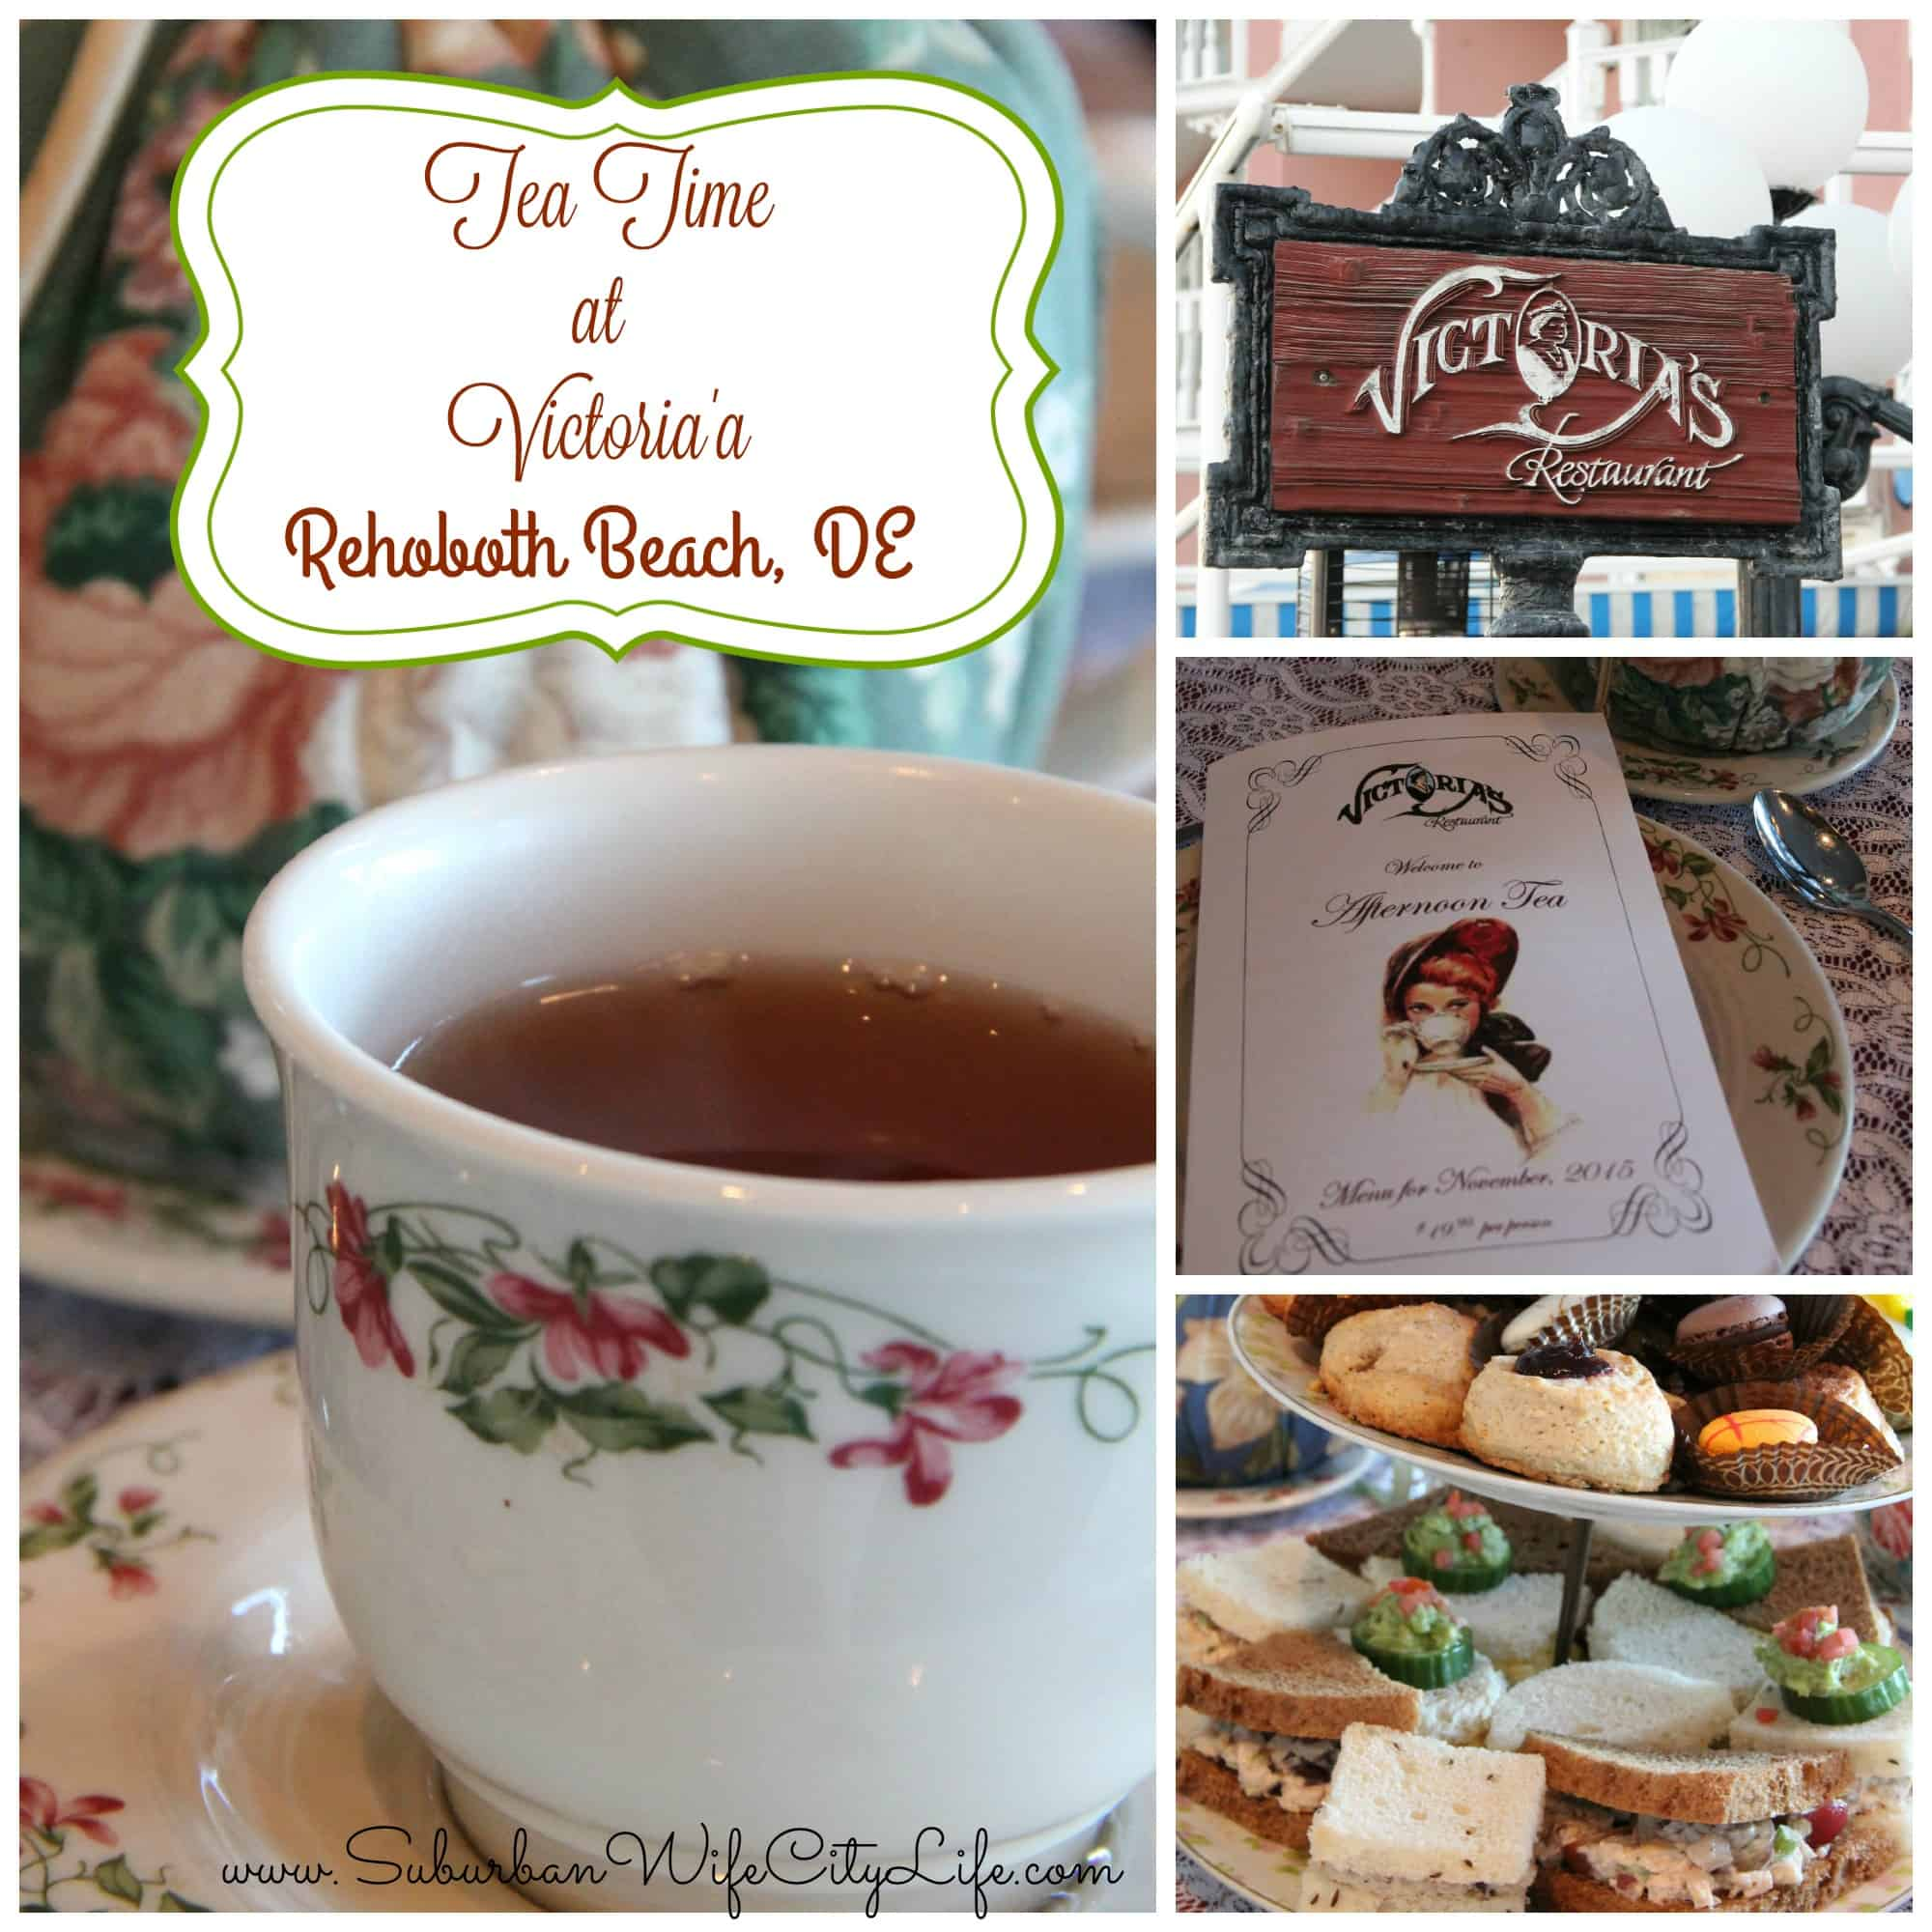 Tea Time at Victoria's in Rehoboth Beach, DE